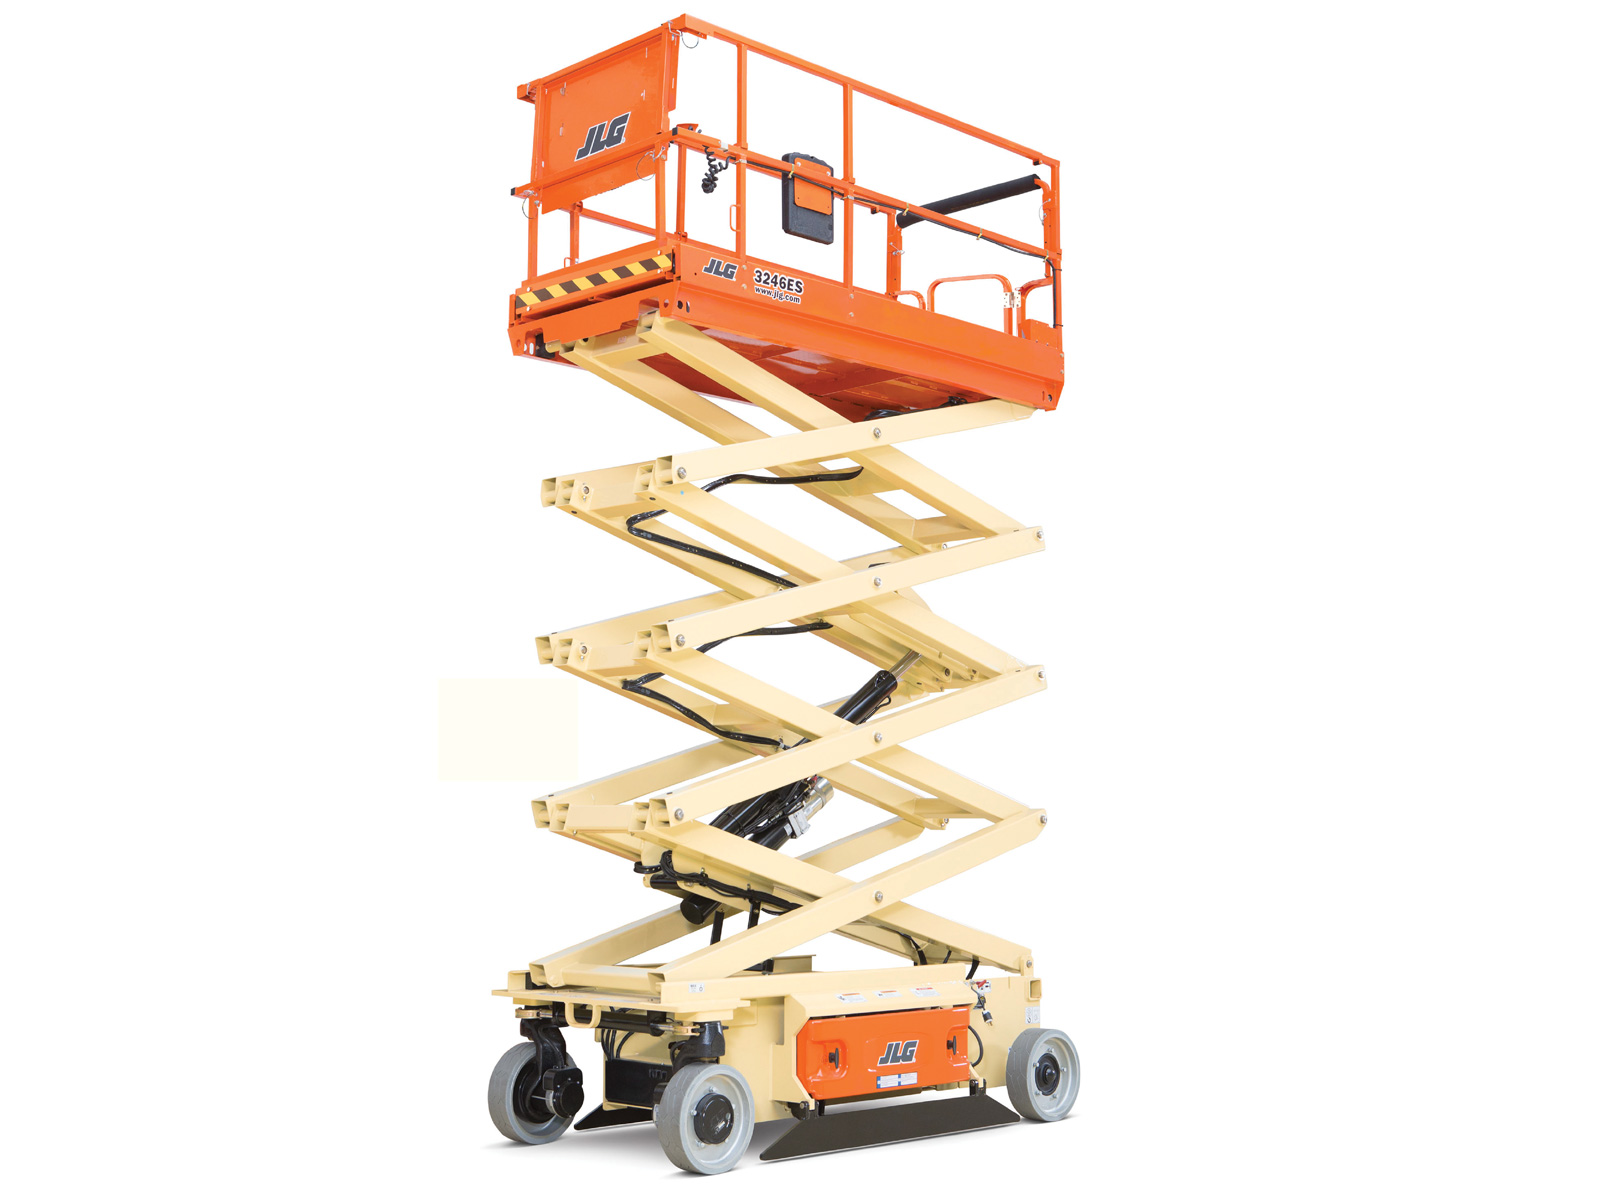 Bpm Select The Premier Building Product Search Engine Elevating Eagle Auto Mobile Lift Wiring Diagram Platforms